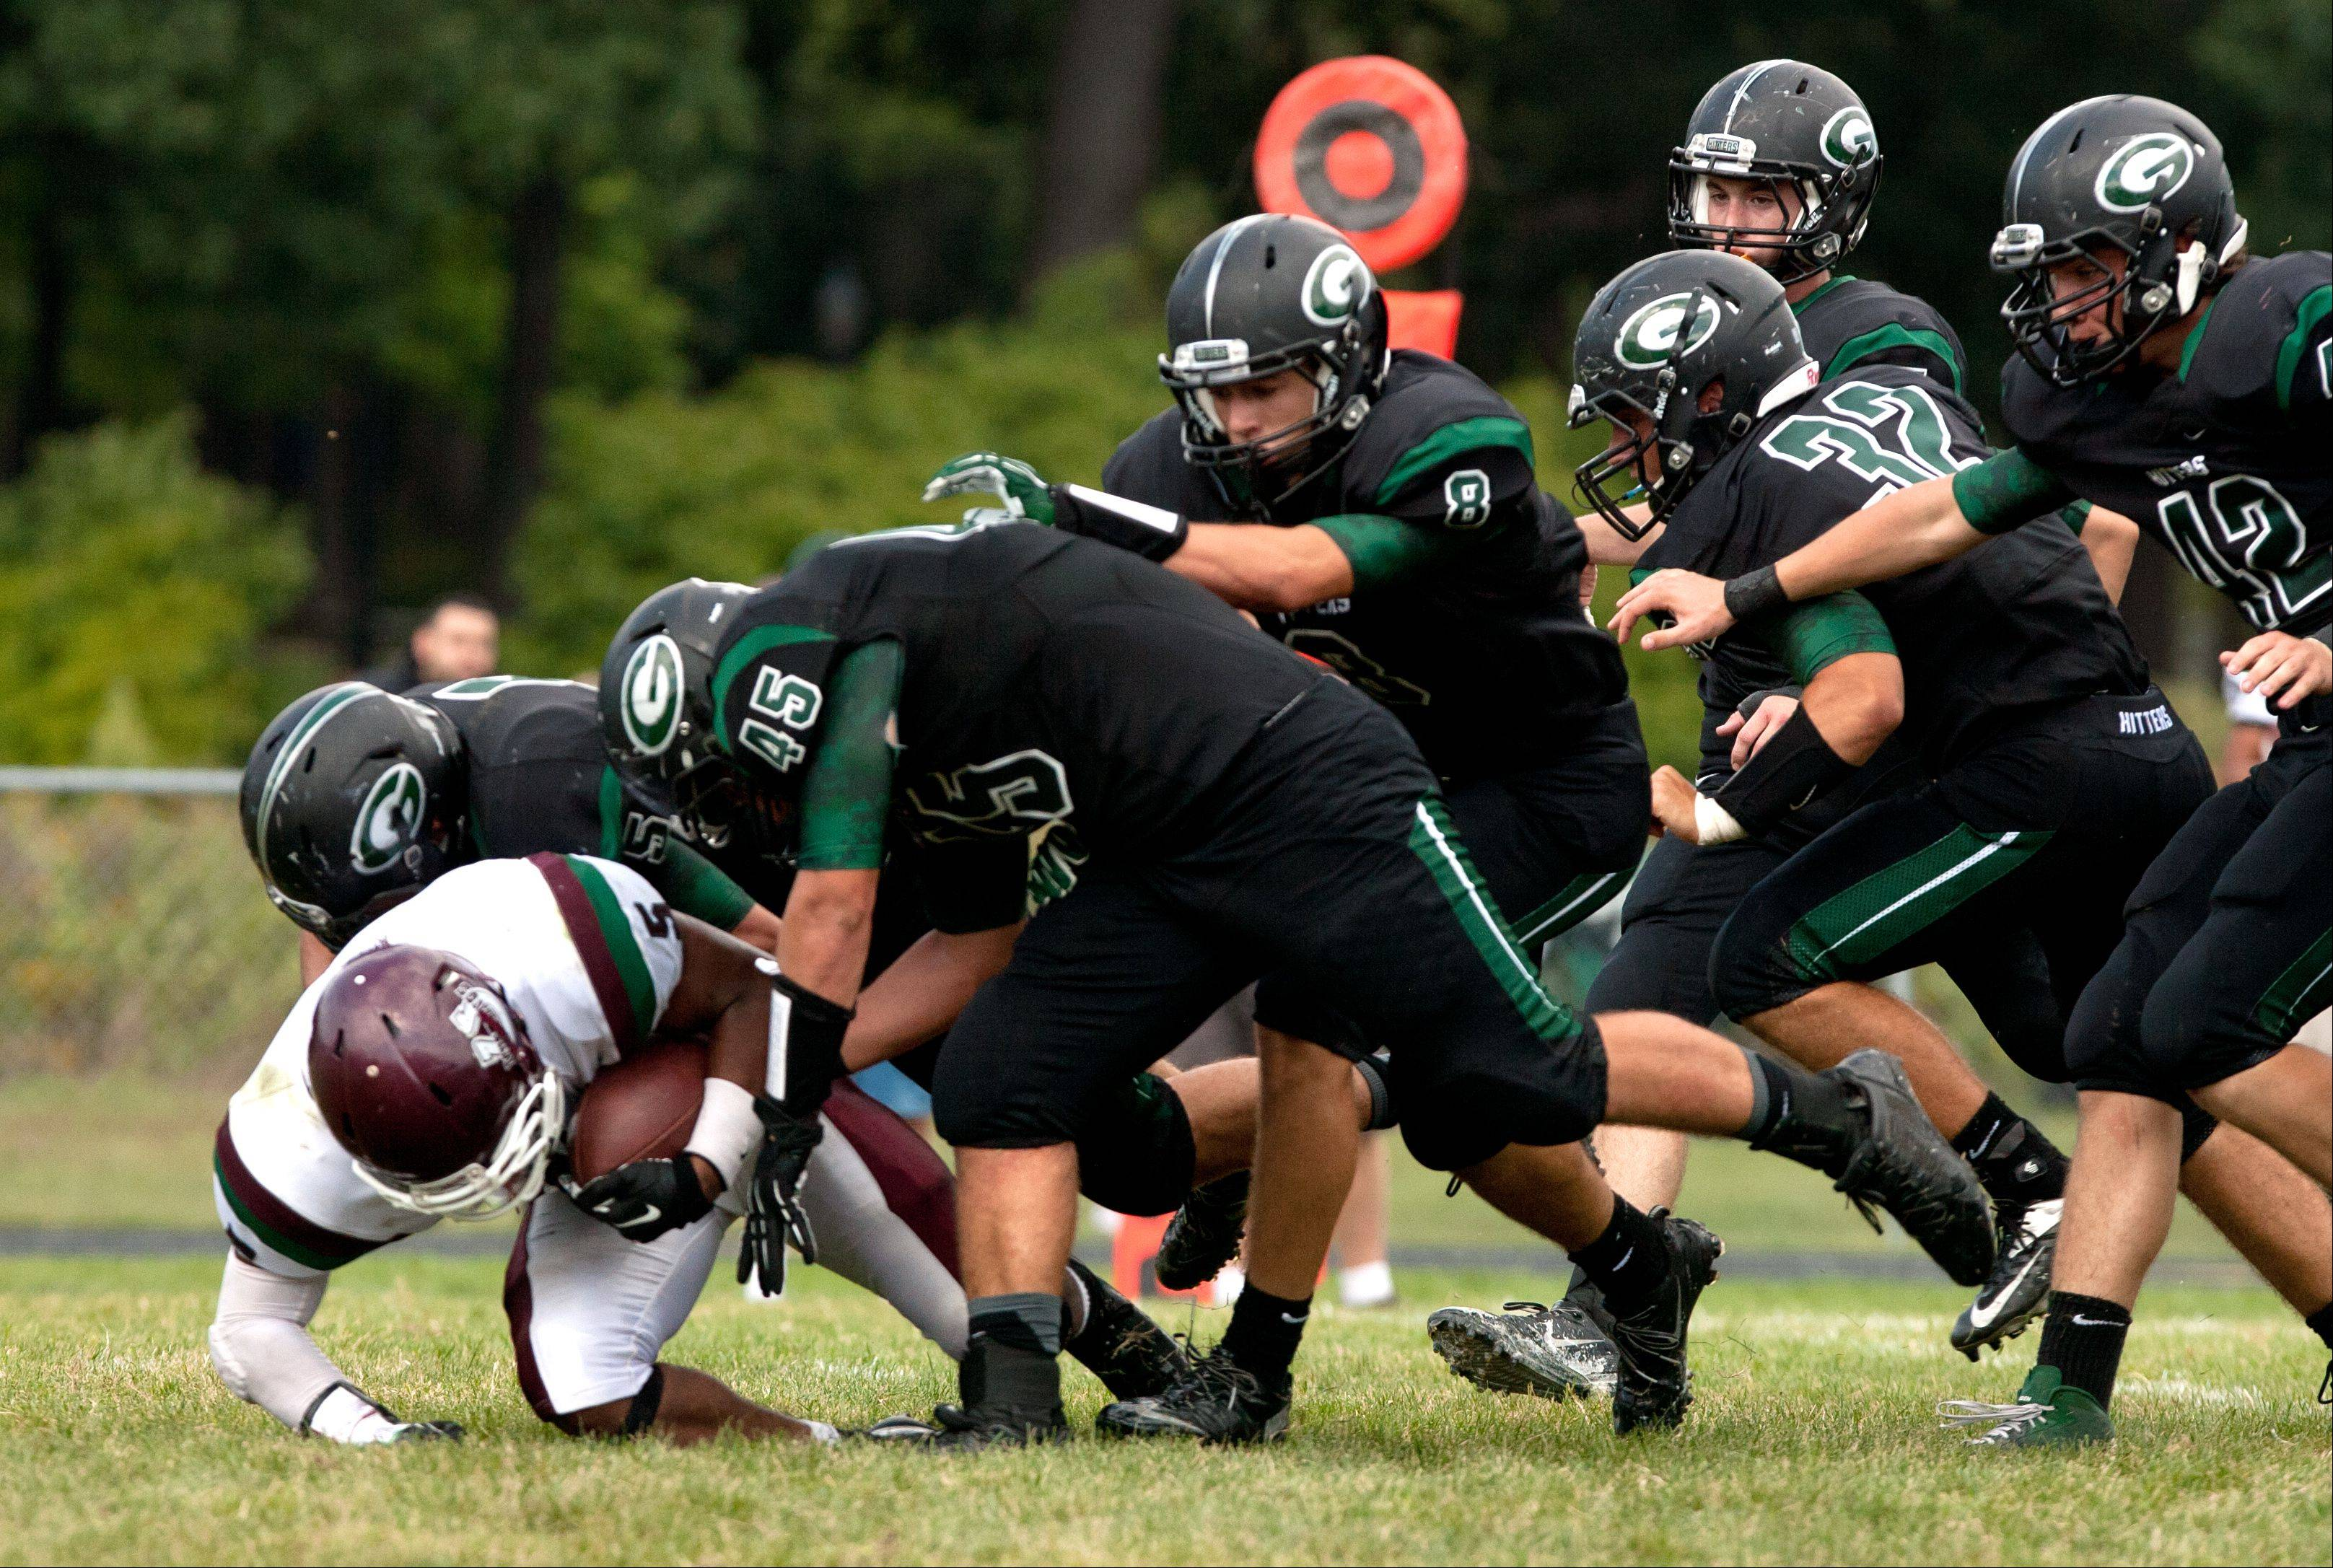 Glenbard West's defense swarm Morton's M. Hester during Saturday's football game.